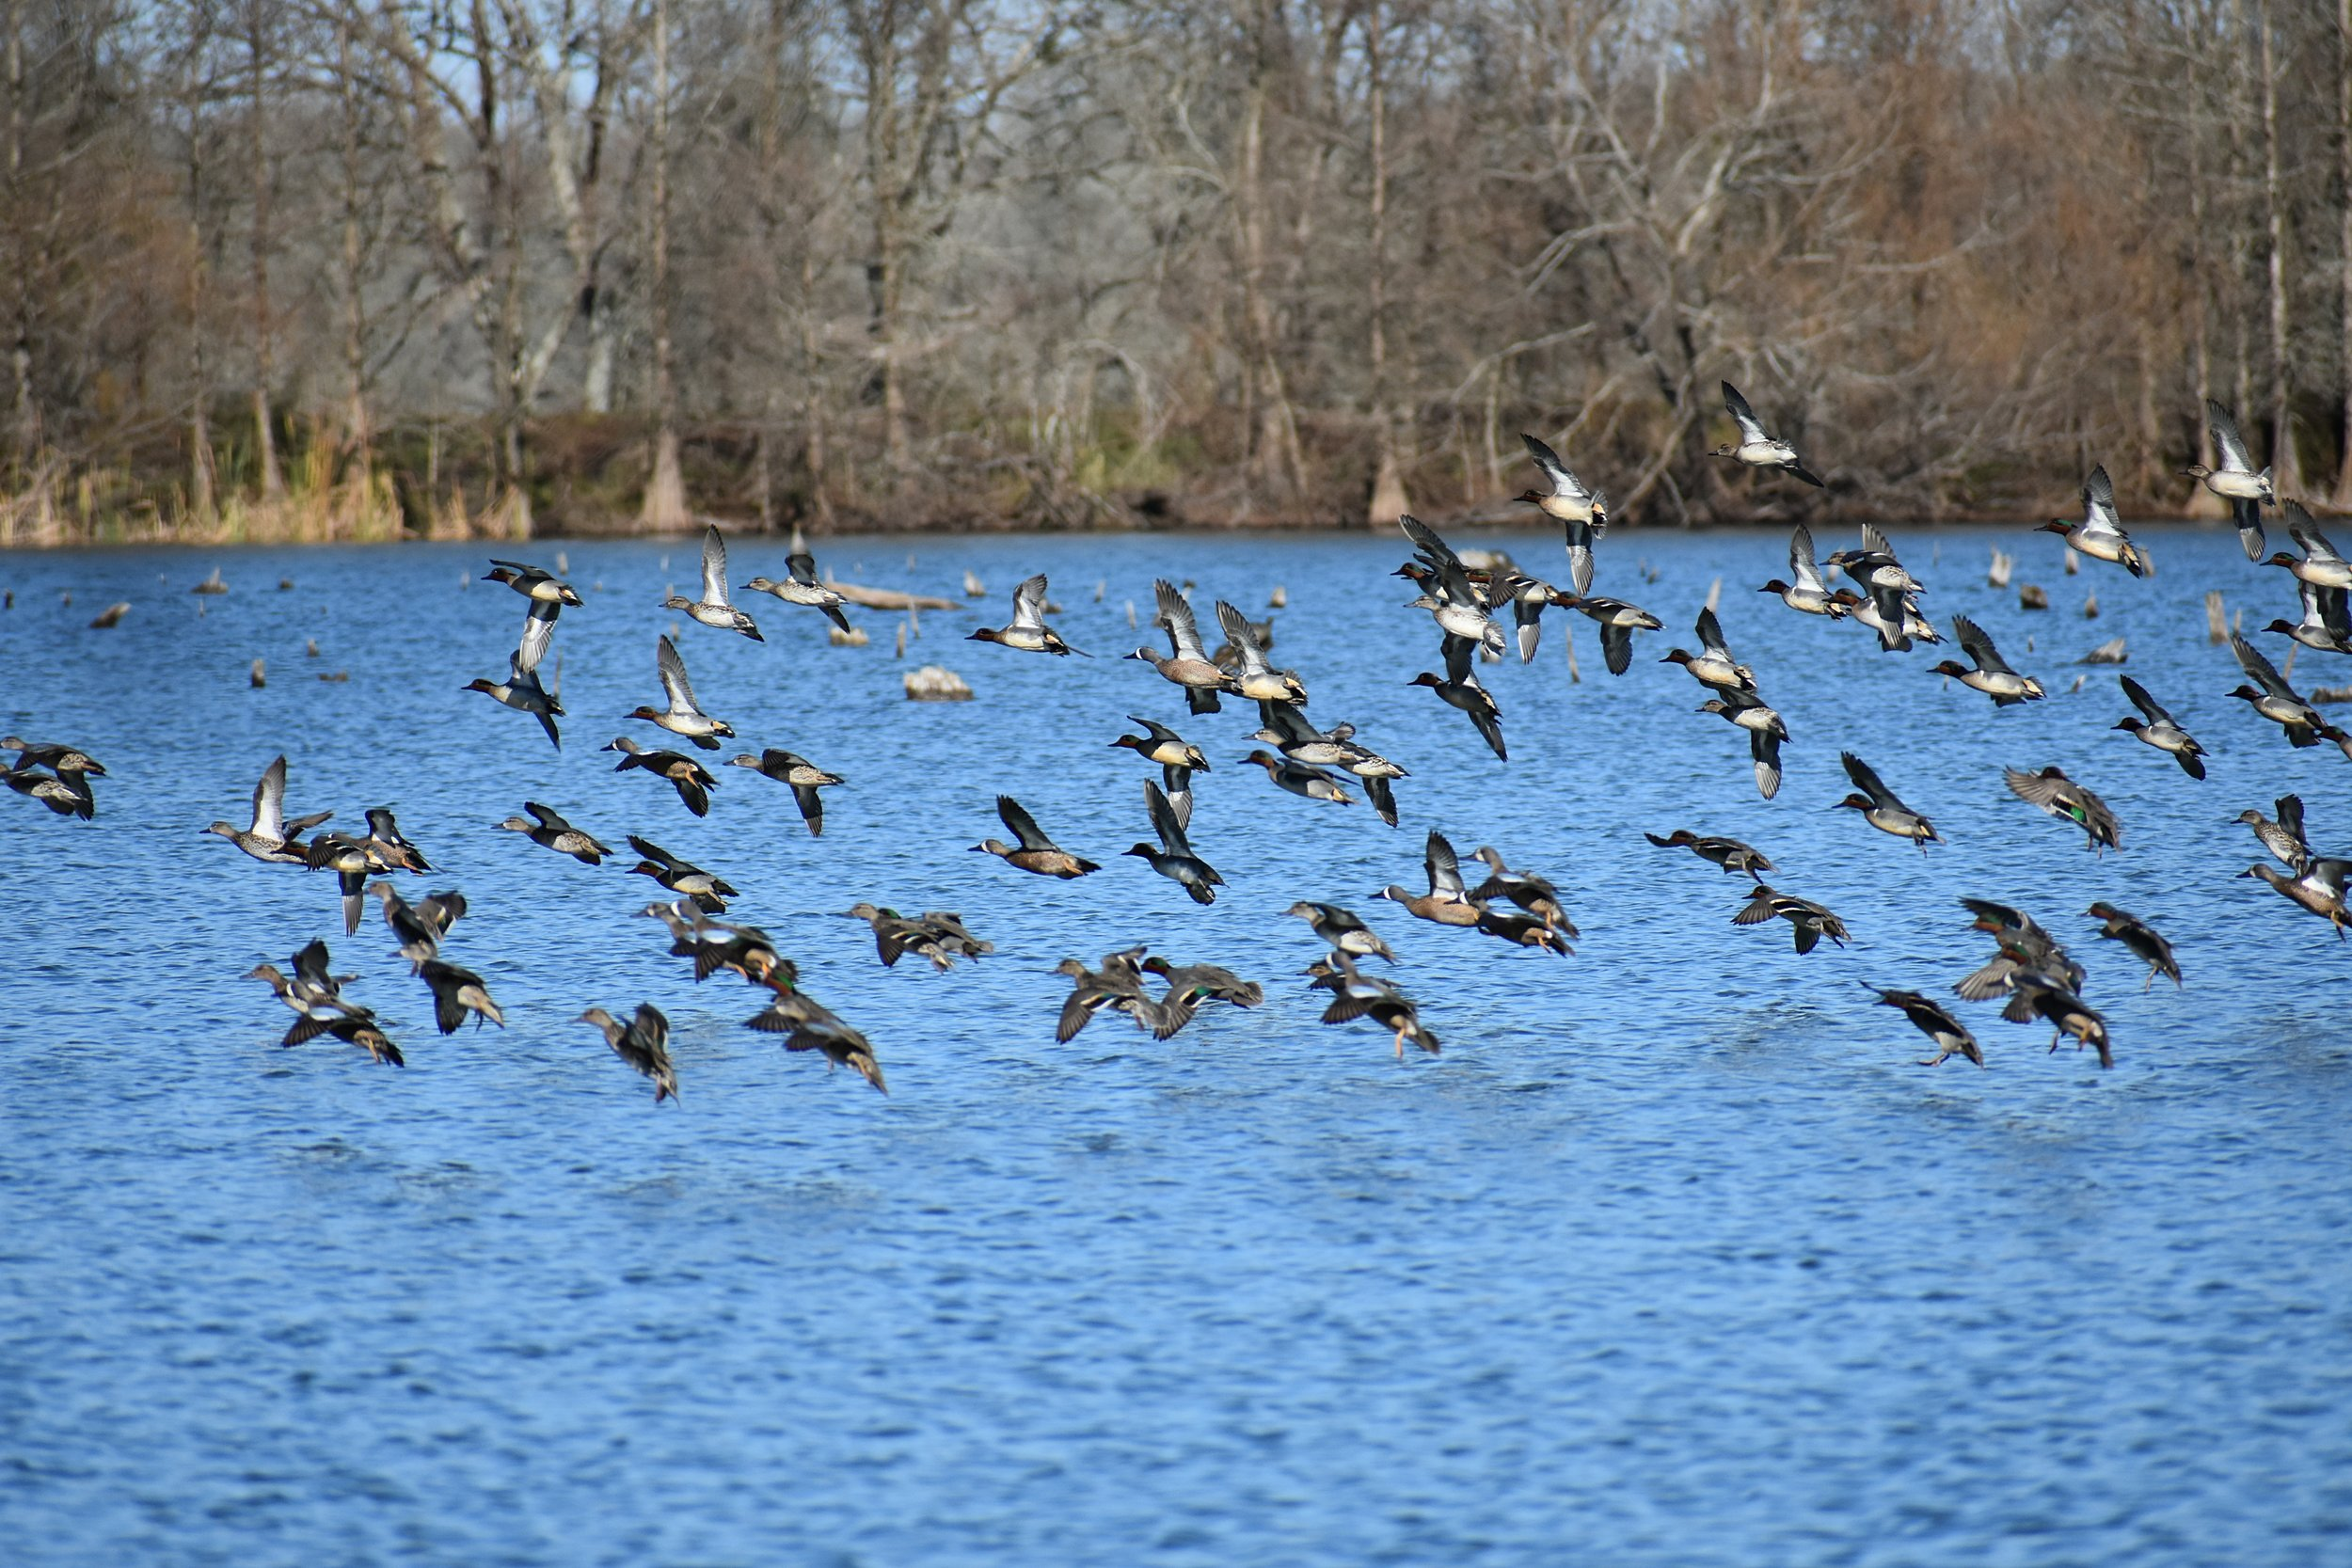 Waterfowl  - A variety of waterfowl species can be seen in this picture to include green-wing and blue-wing teal.